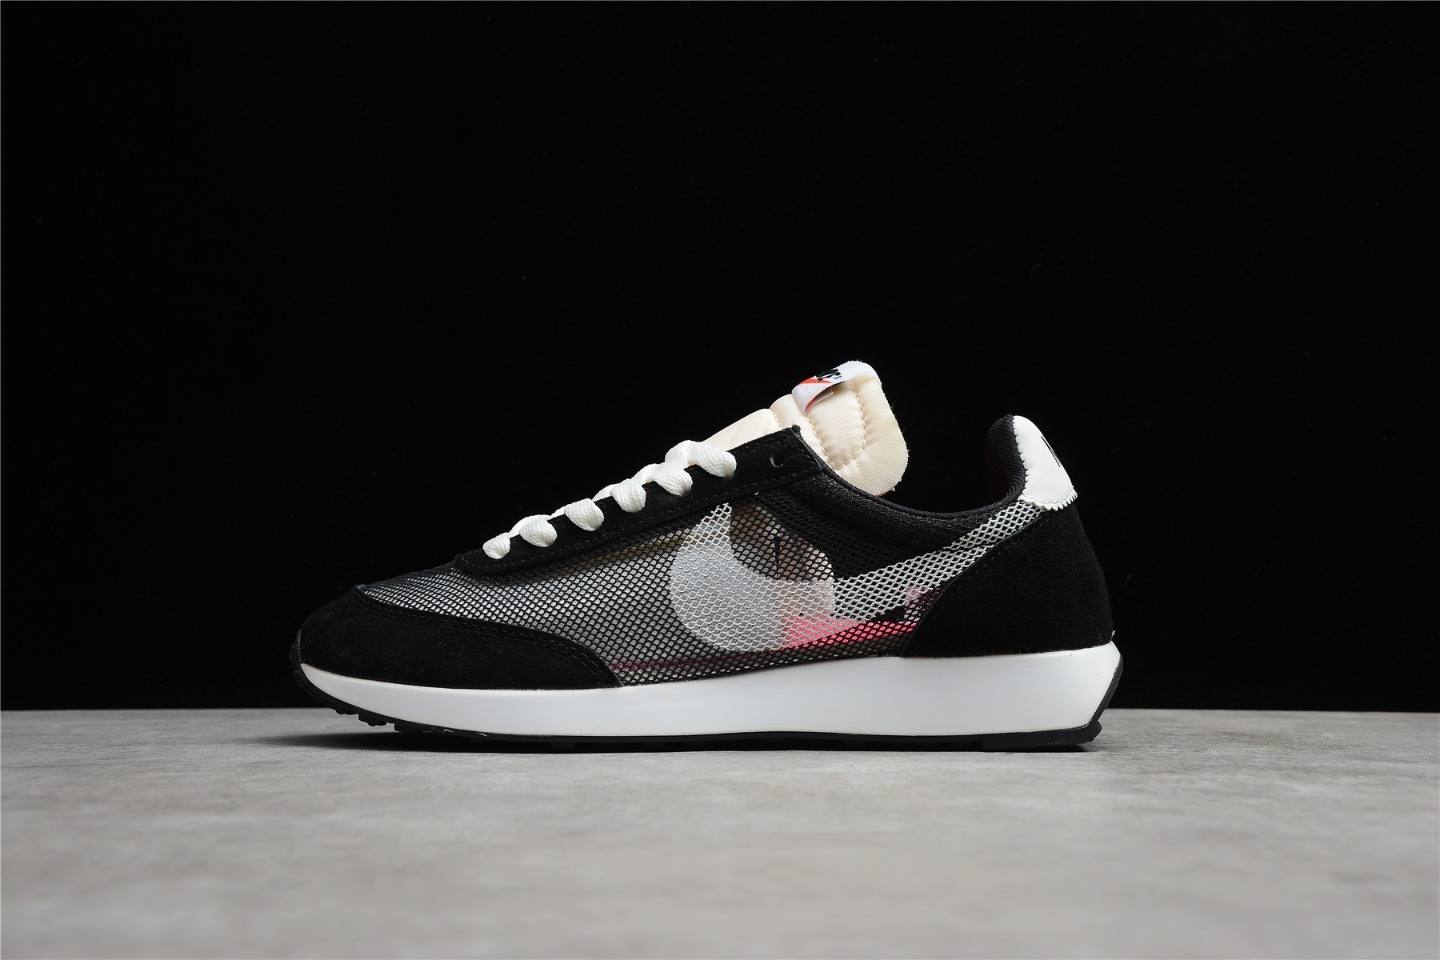 Hot sale Nike Air Tailwind 79 BeTrue white and black running shoes BV7930-401